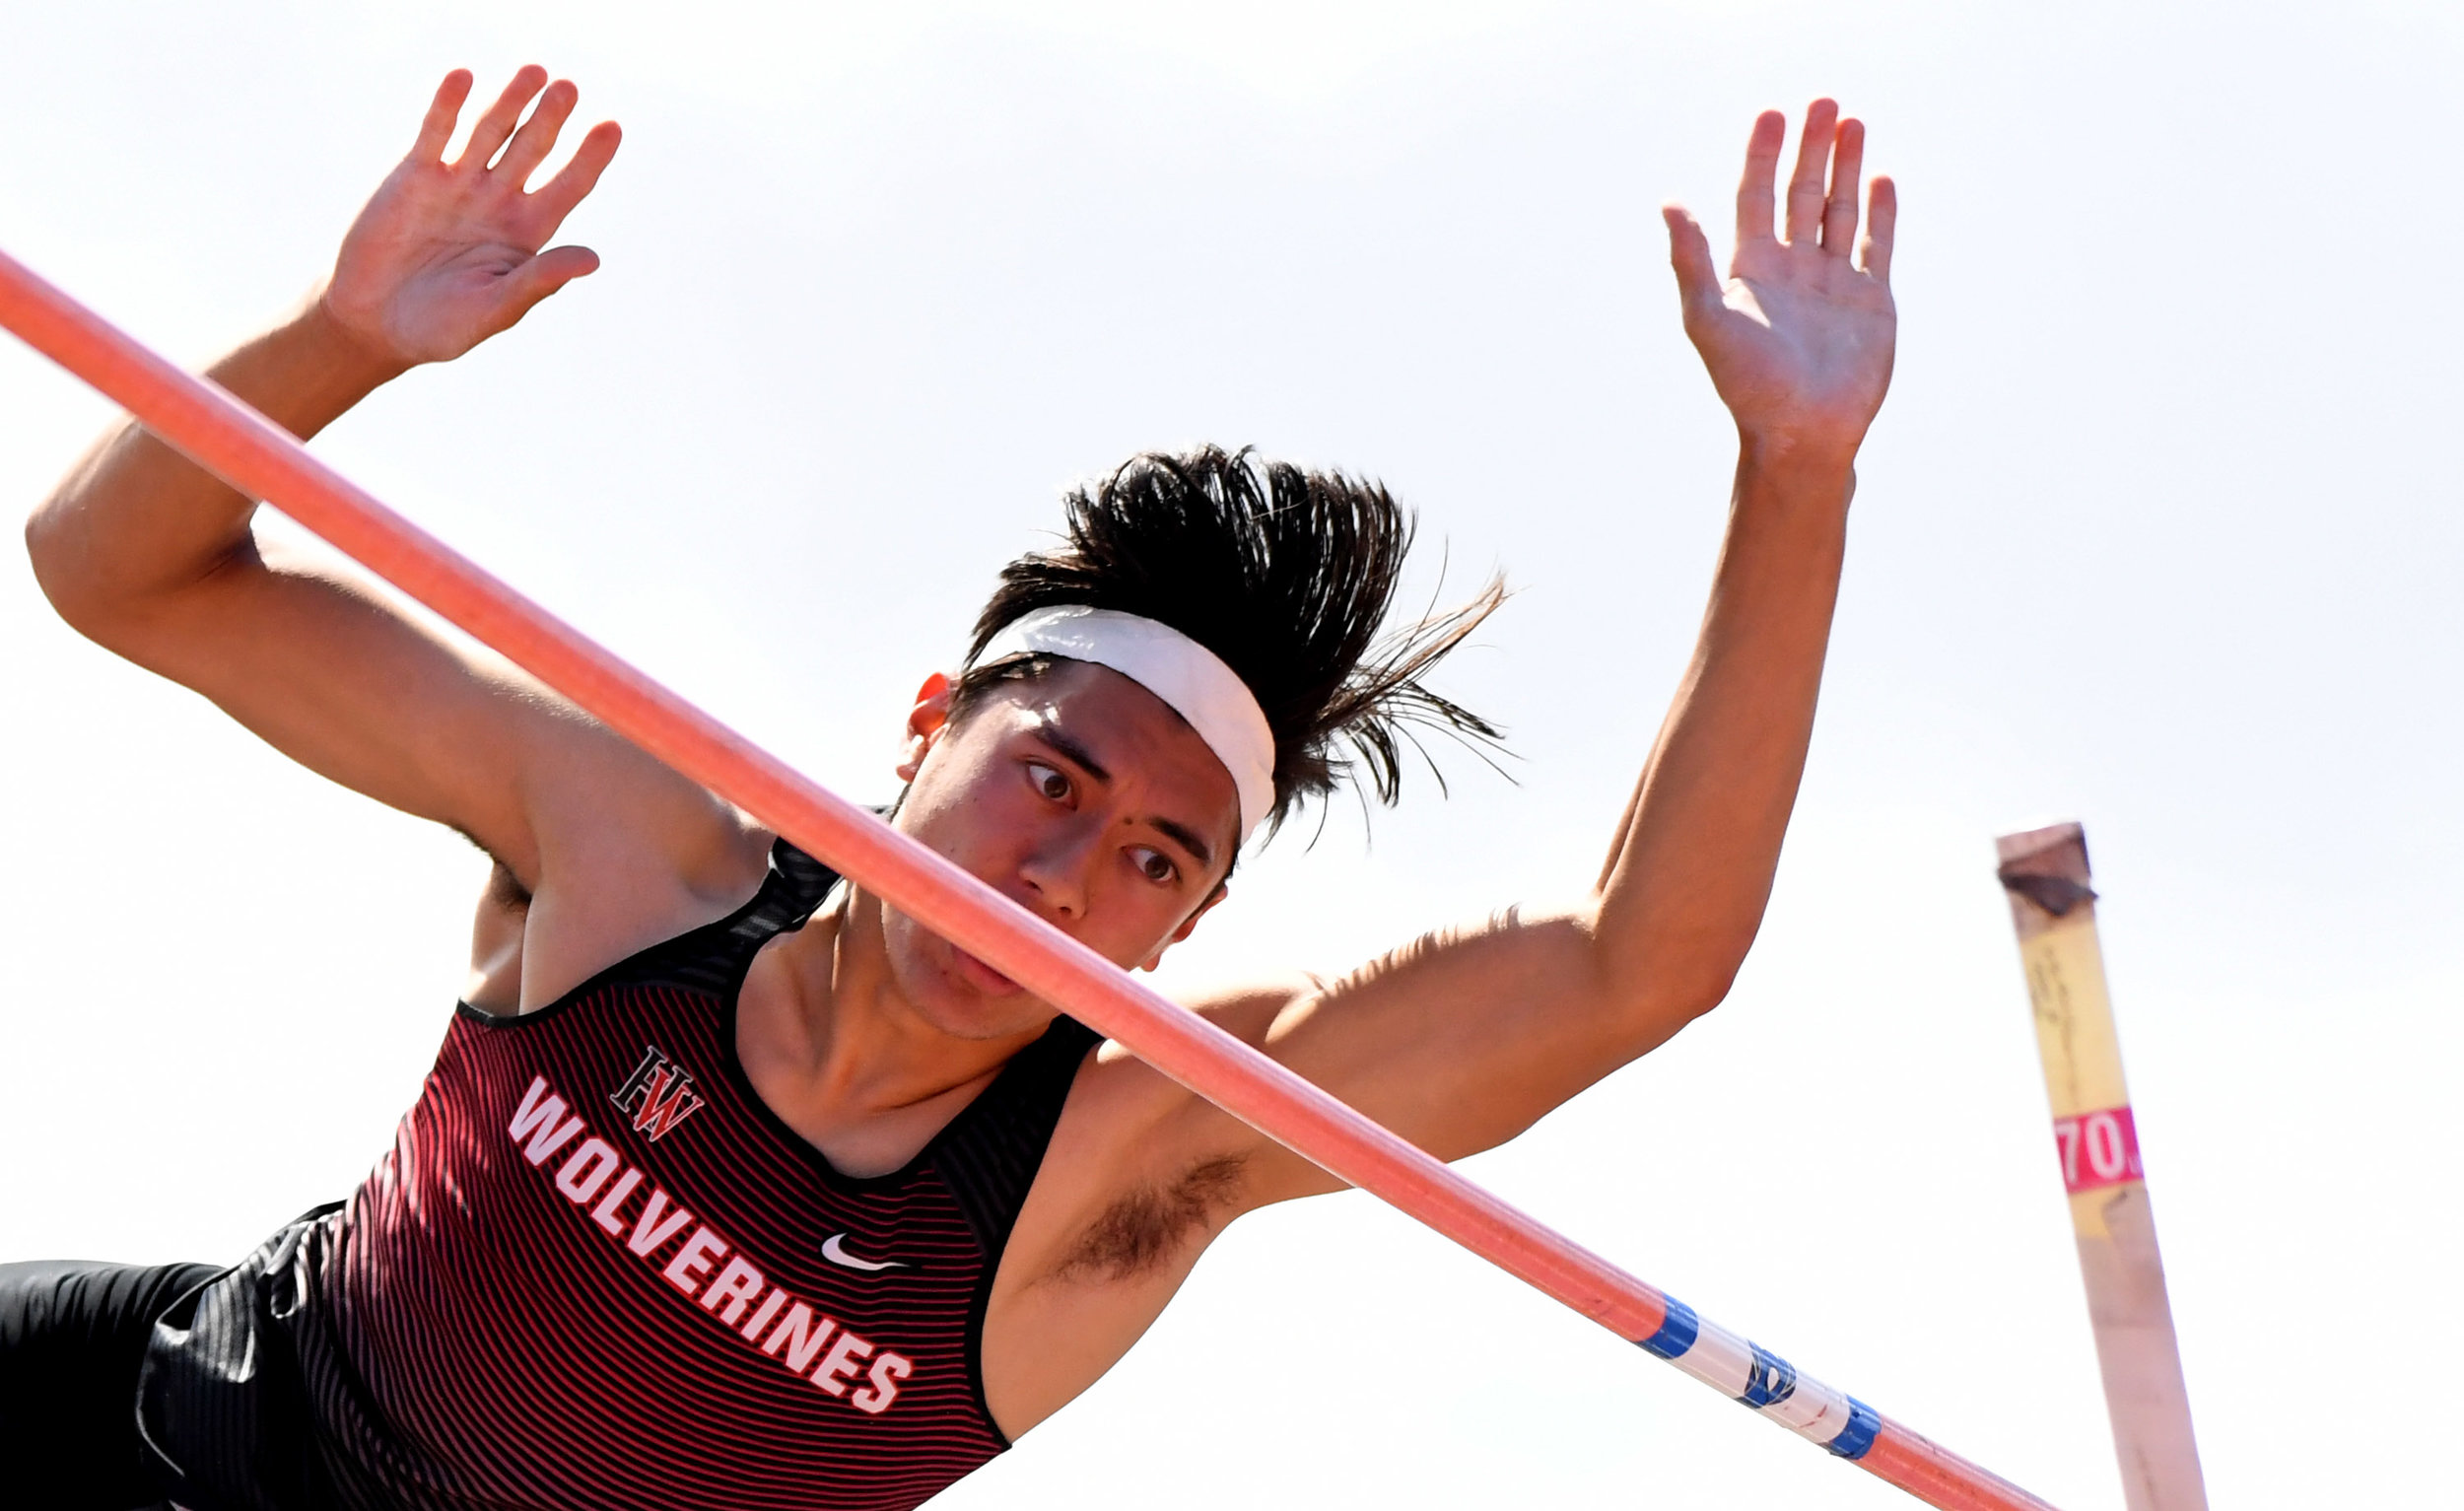 Harvard Westlake's Tiber Seireeni finished second win the pole vault during the CIF-SS Track and Field Masters meet at El Camino College in Torrance, Calif., on Saturday, May 26, 2018.